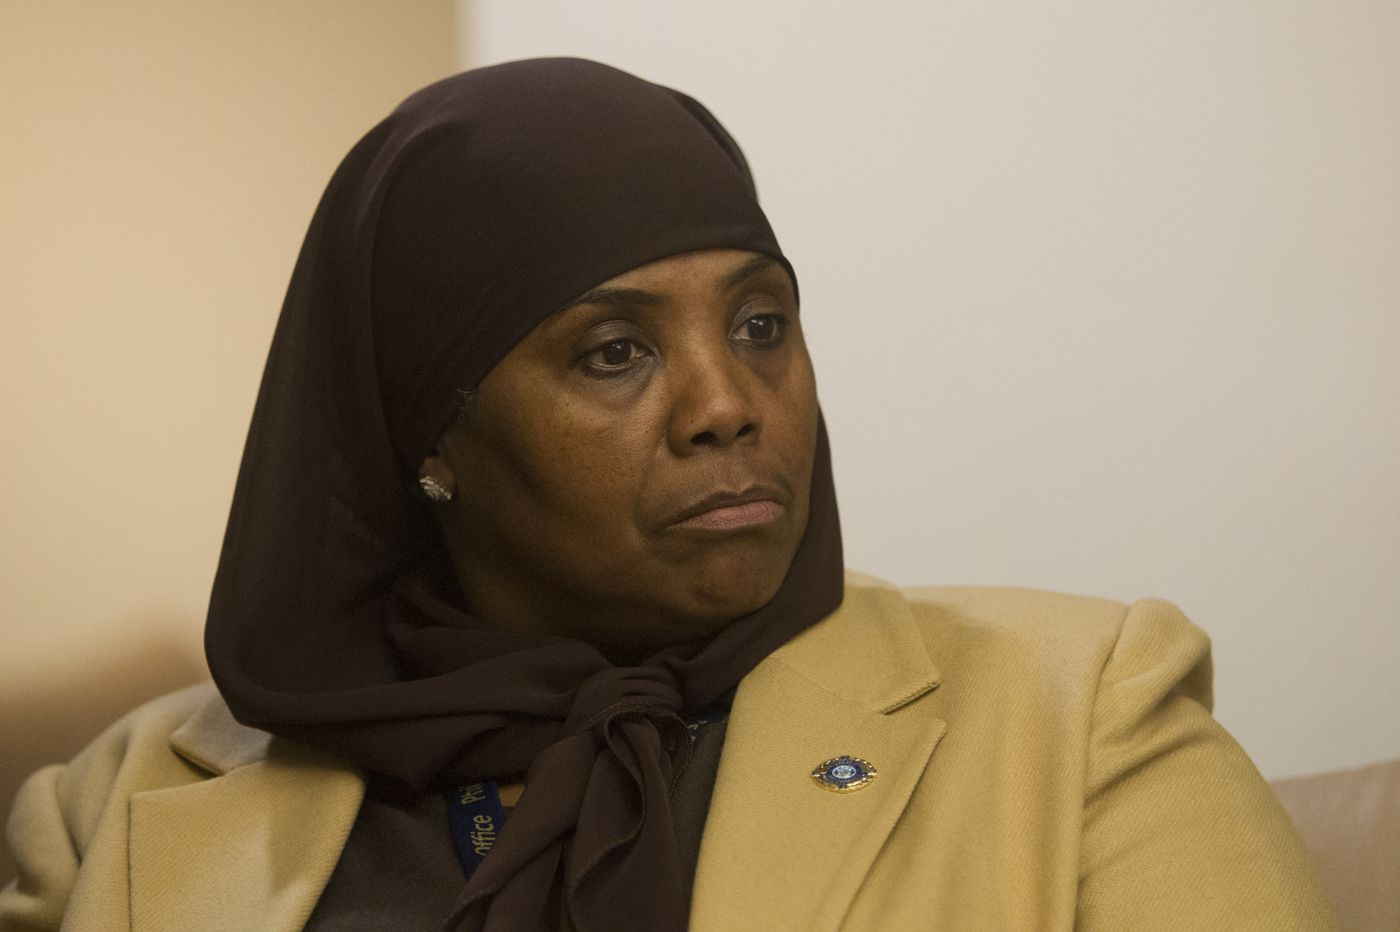 West Philly lawmaker Movita Johnson-Harrell expects to be charged with a crime, sources say